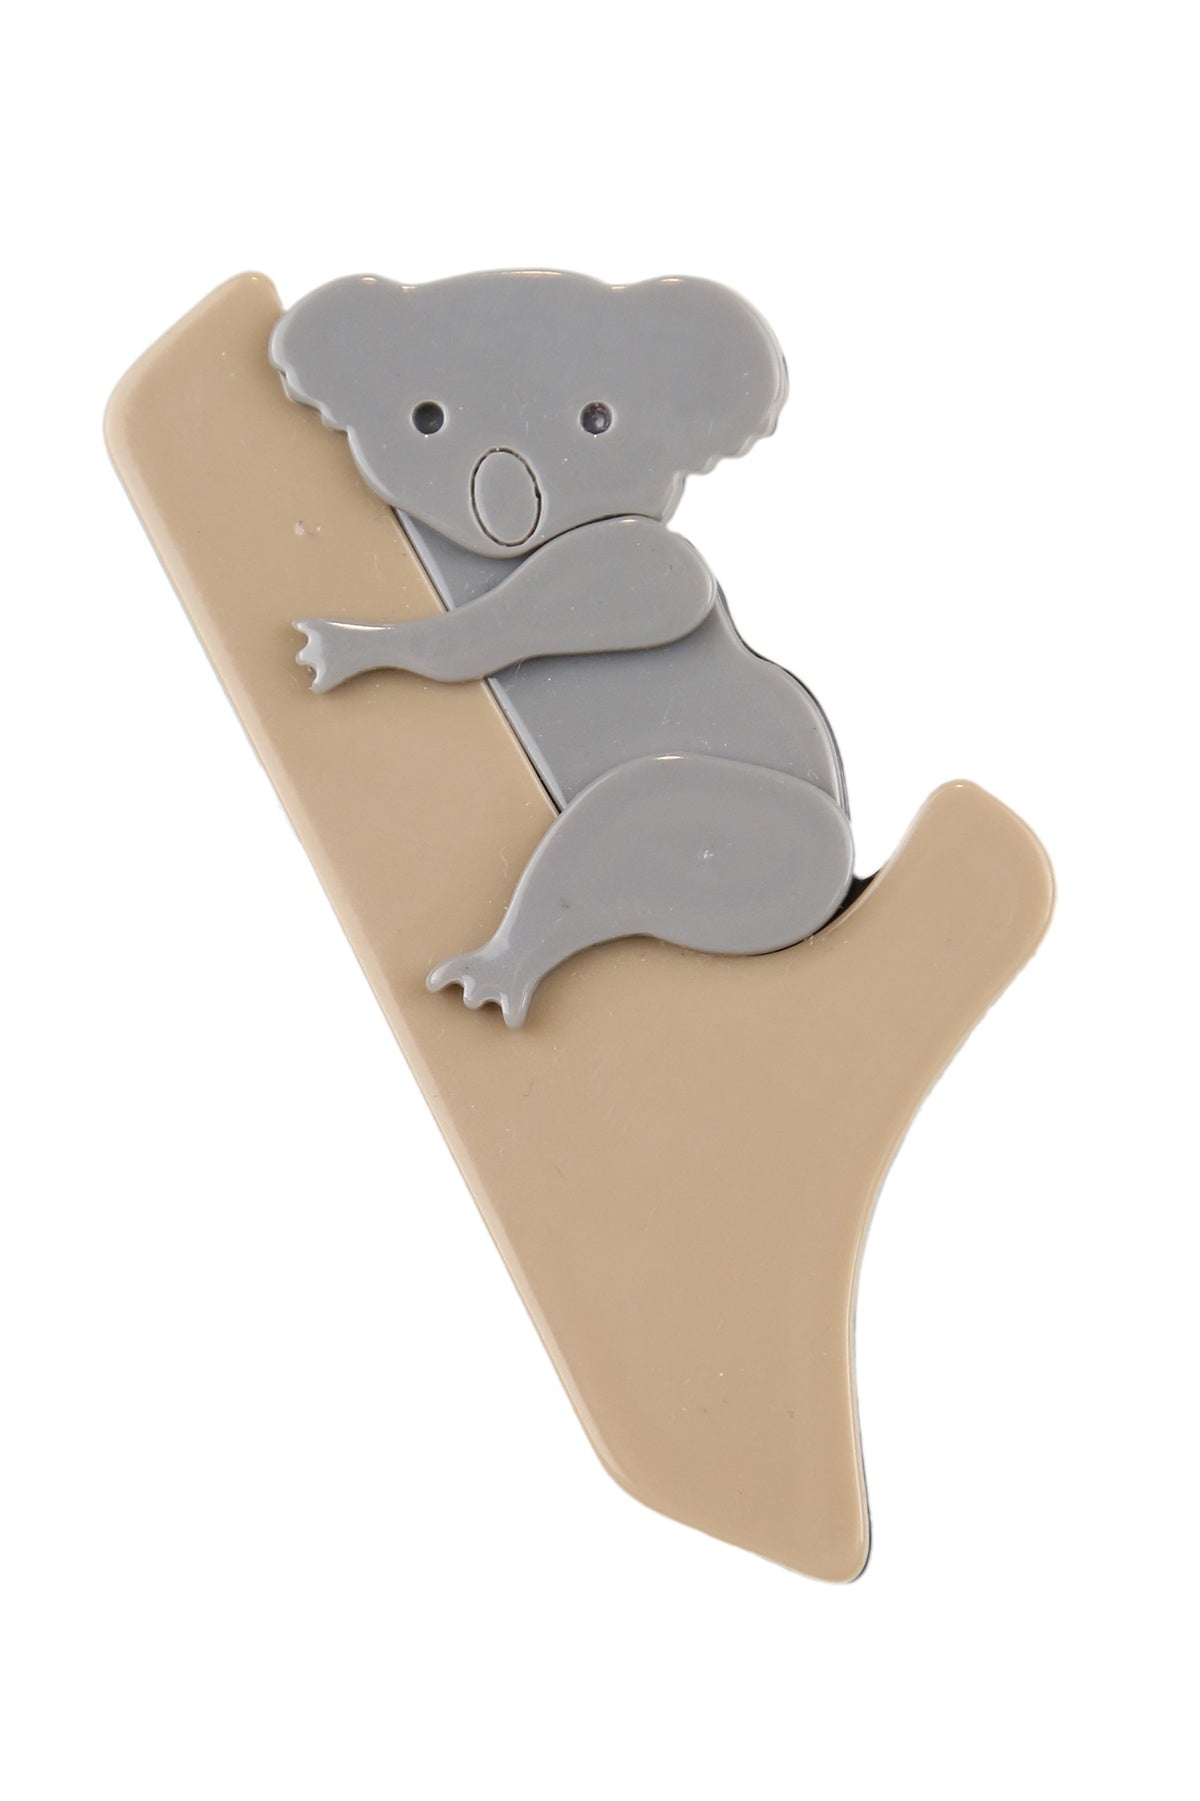 Sara The Koala Broach